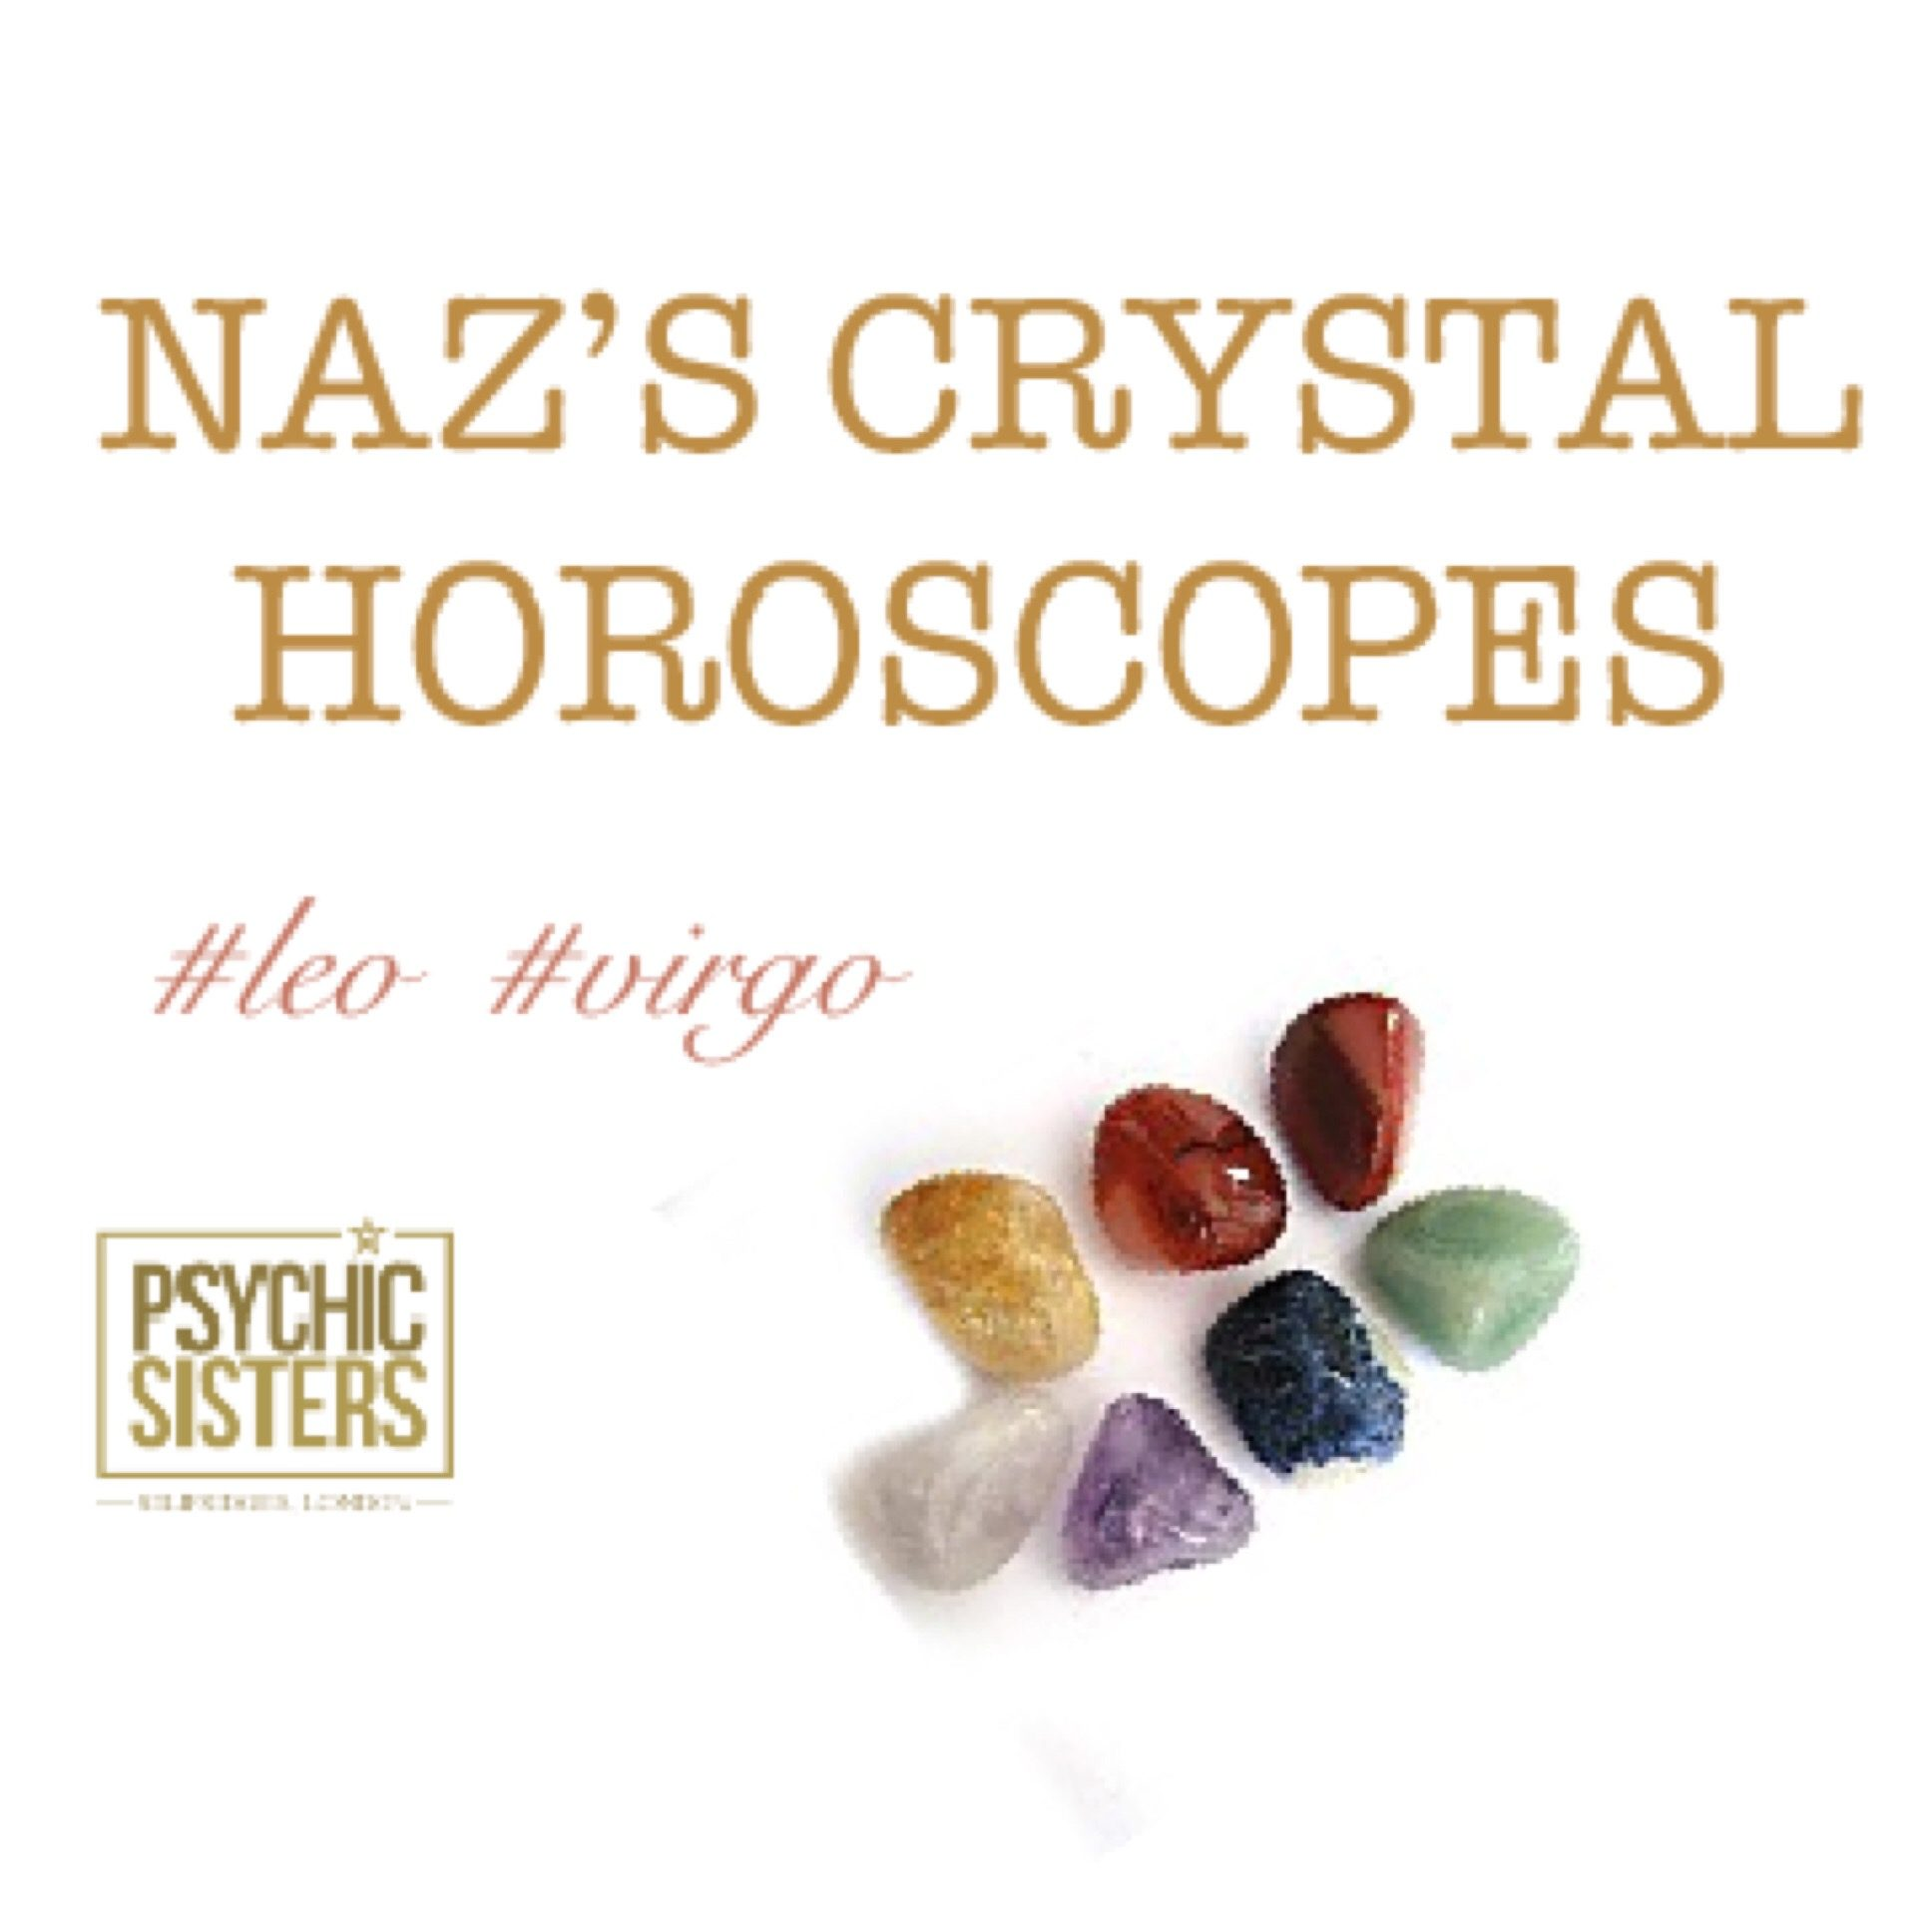 Naz's Crystal Horoscopes   11th - 17th March 2018